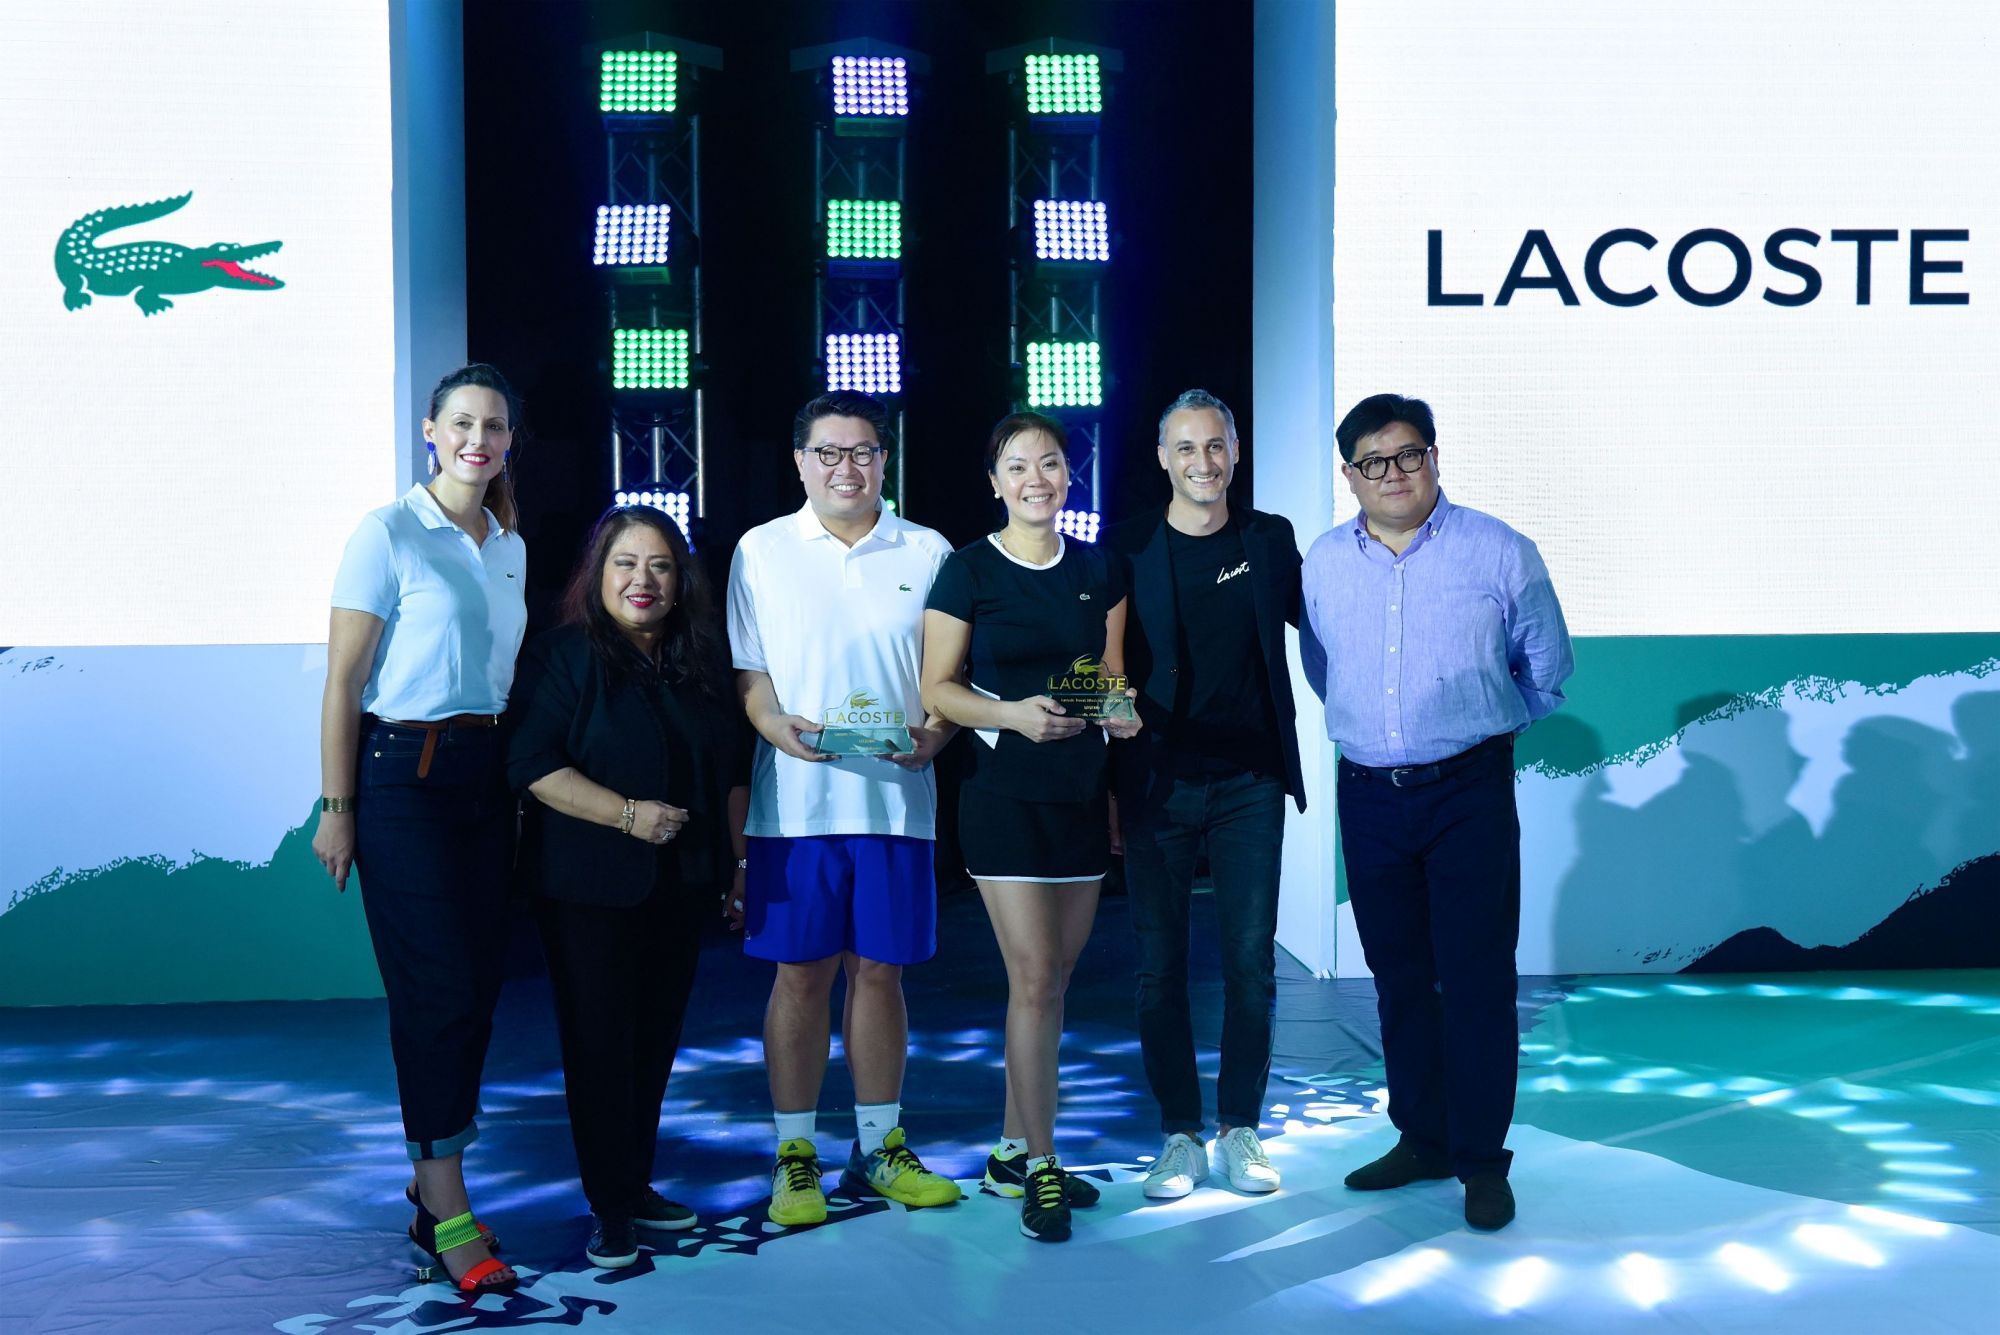 Lacoste SA Marketing Director Jessy Baretta, SSI Group, Inc. Executive Vice President Elizabeth Quiambao, Hanky Lee, Ninay Morales, Lacoste SA Commercial Director Alessandro Tomio, and SSI Group, Inc. President Anton Huang